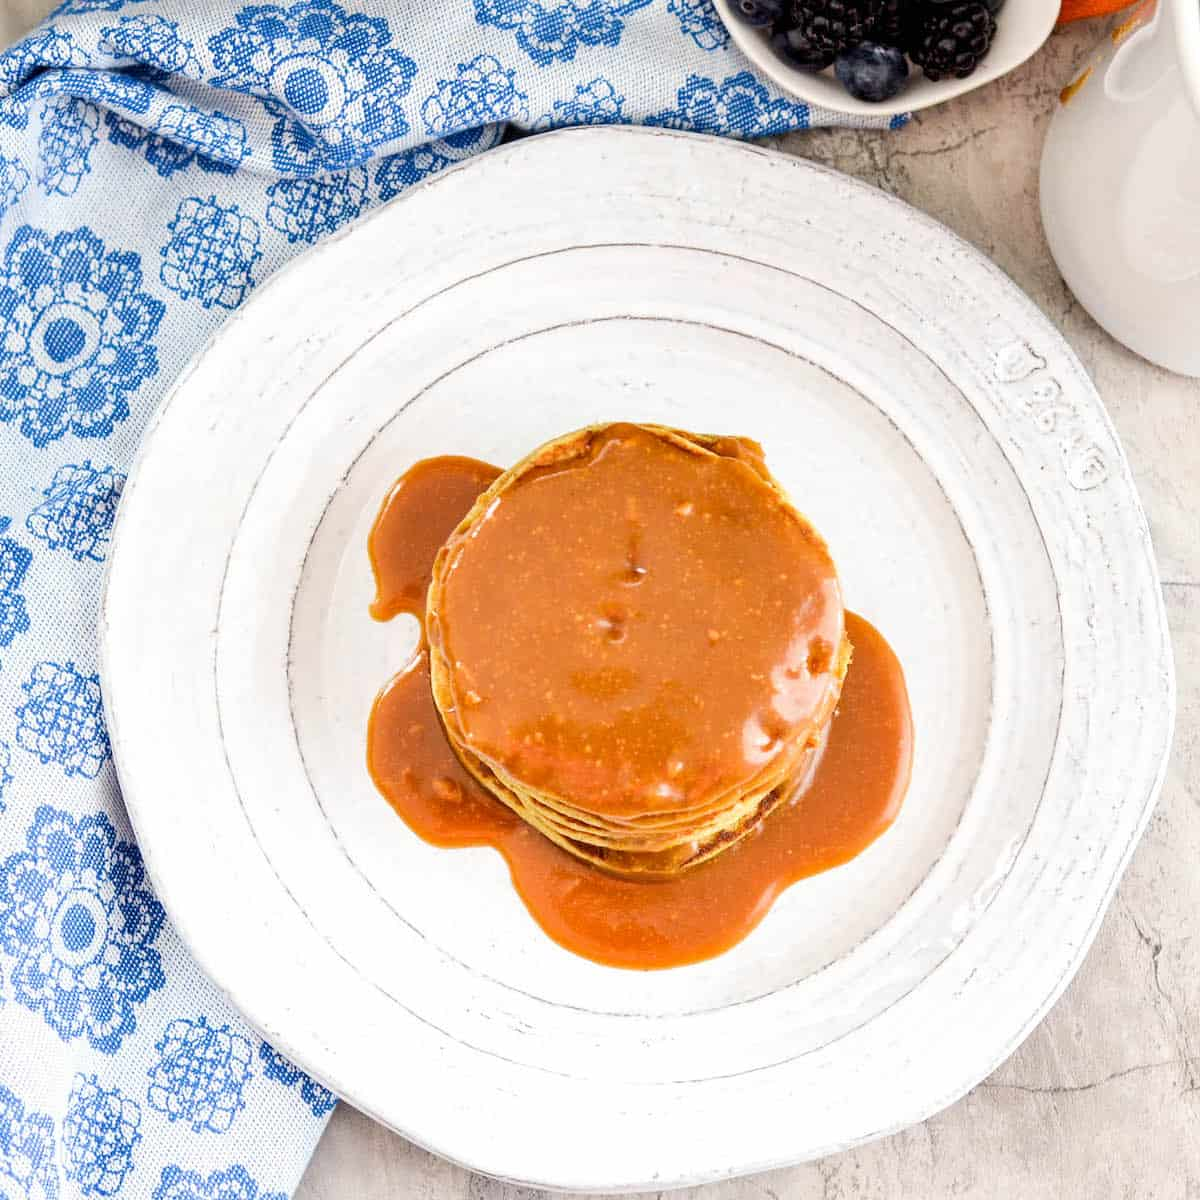 Overhead view of a stack of Zucchini Banana Pancakes with maple syrup.